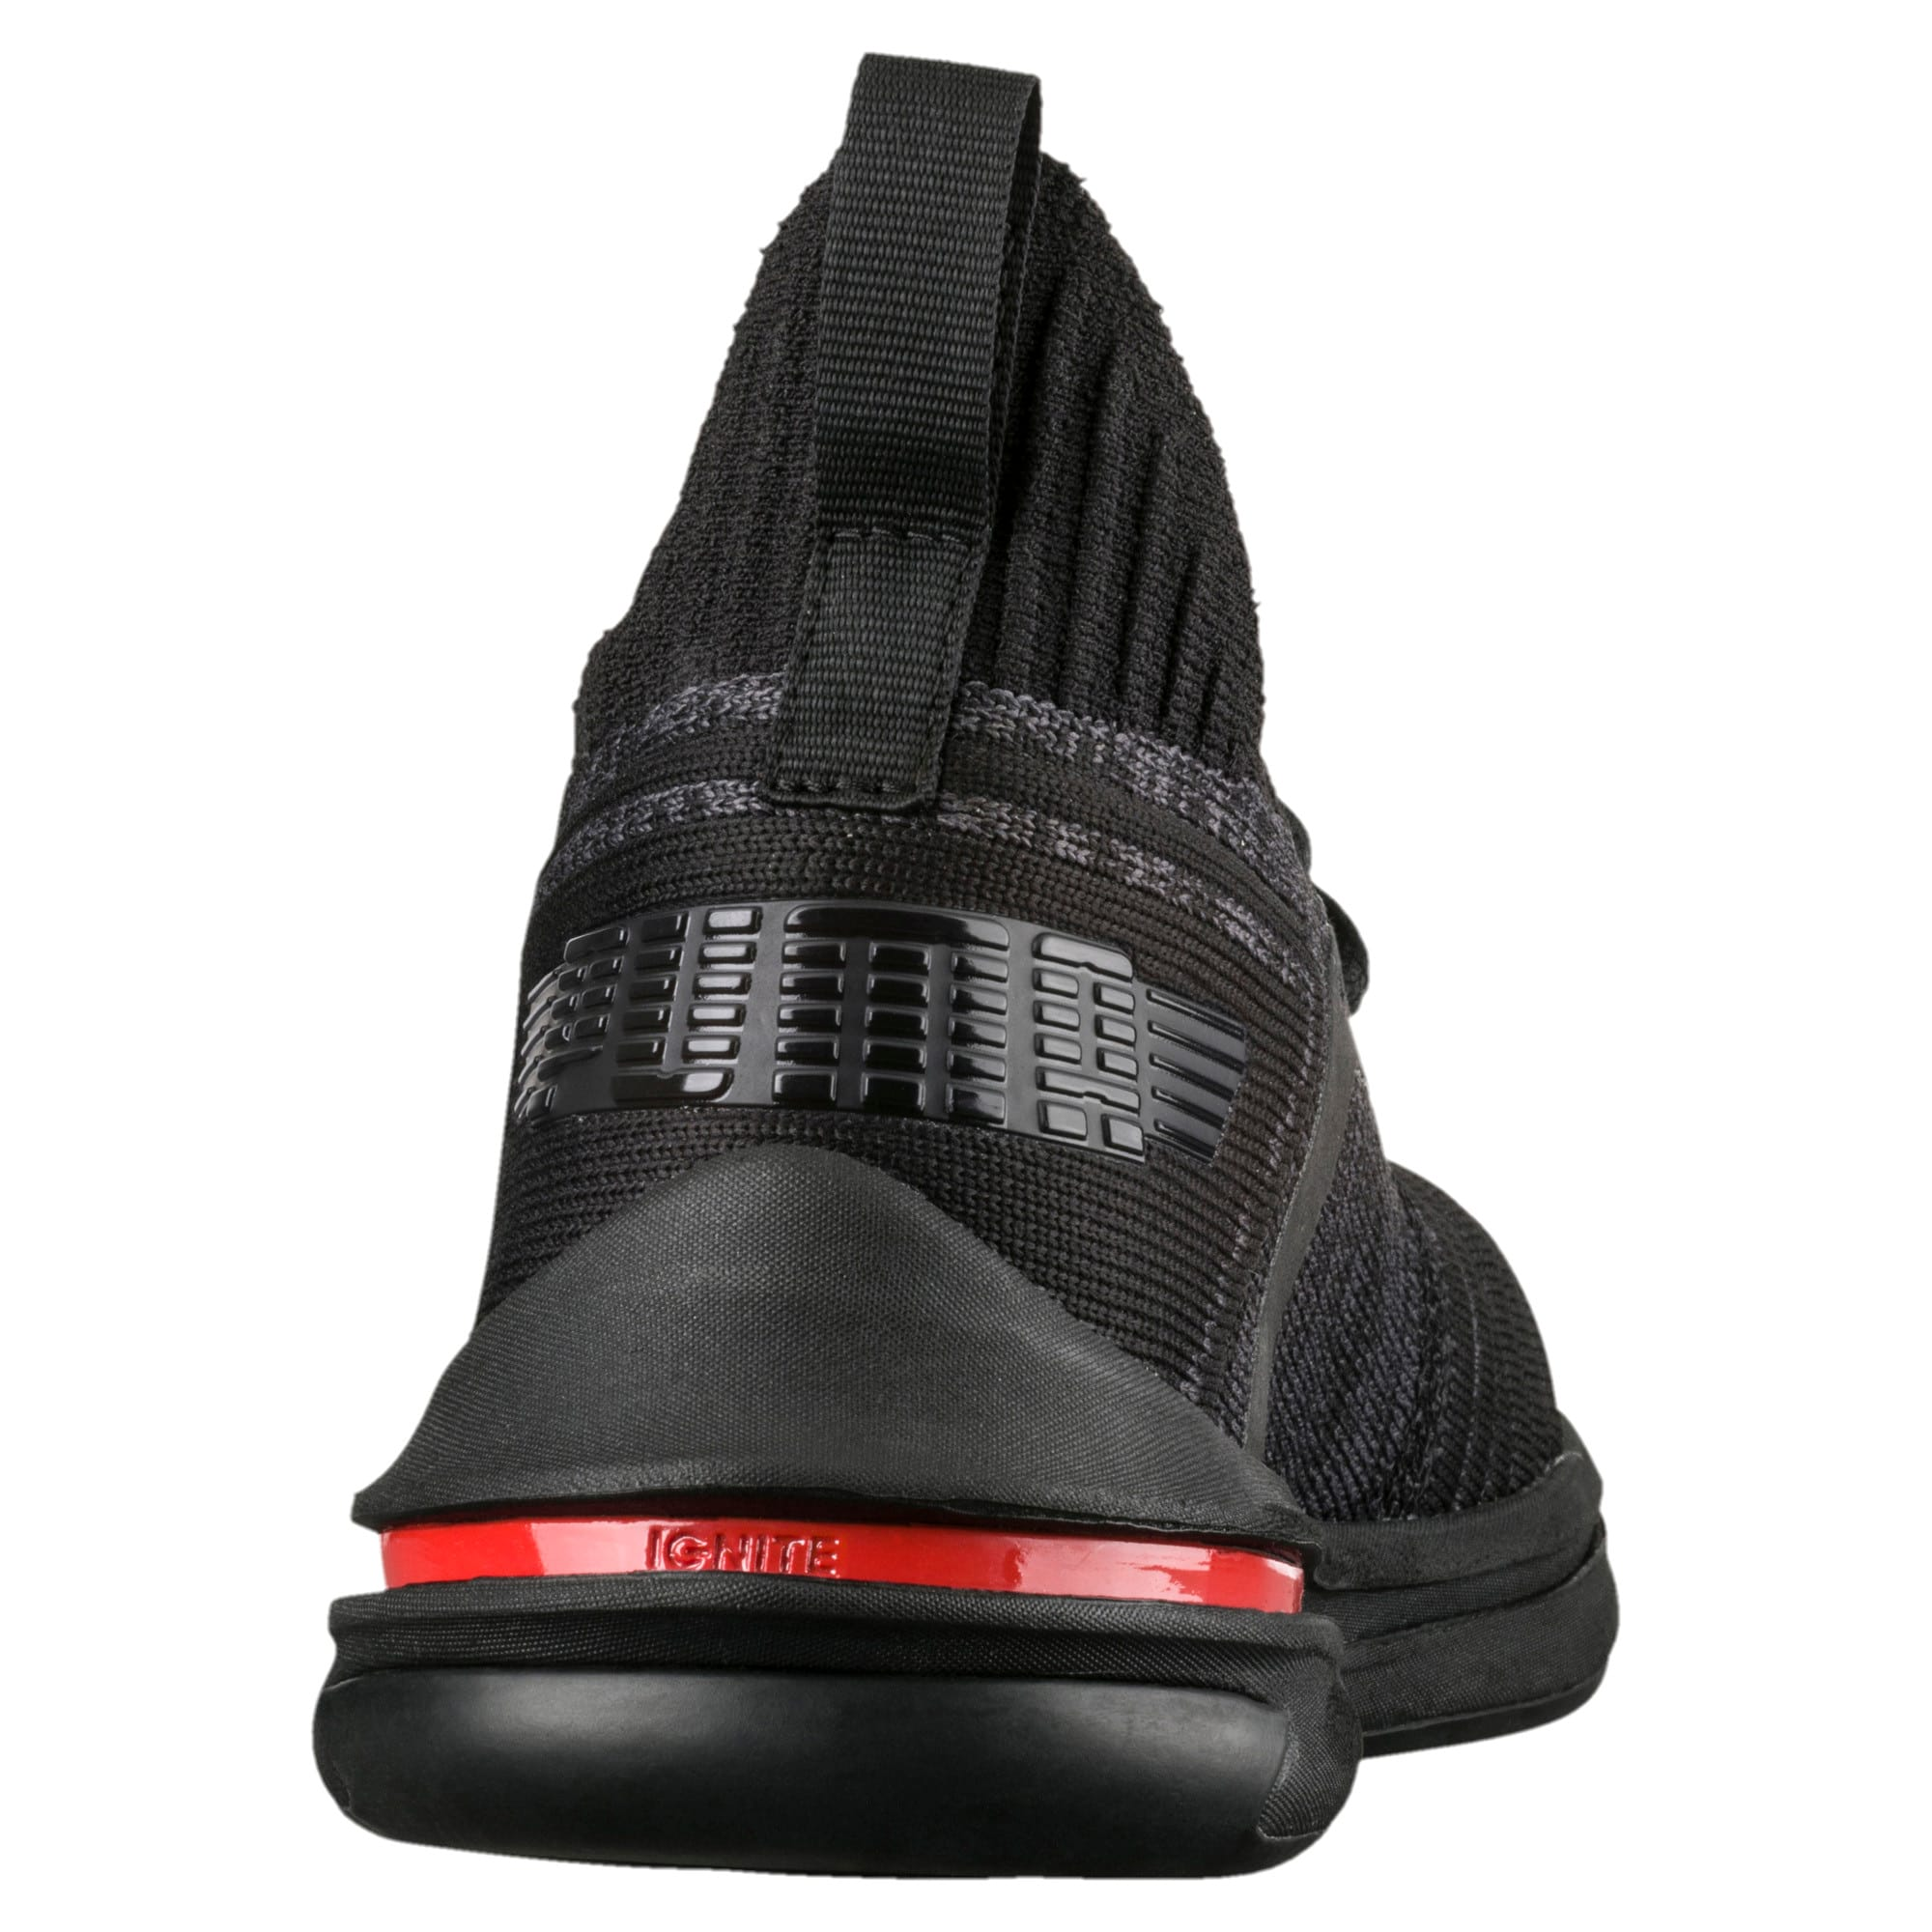 Thumbnail 5 of IGNITE Limitless evoKNIT Kid's Trainers, Black-Black-Asphalt, medium-IND